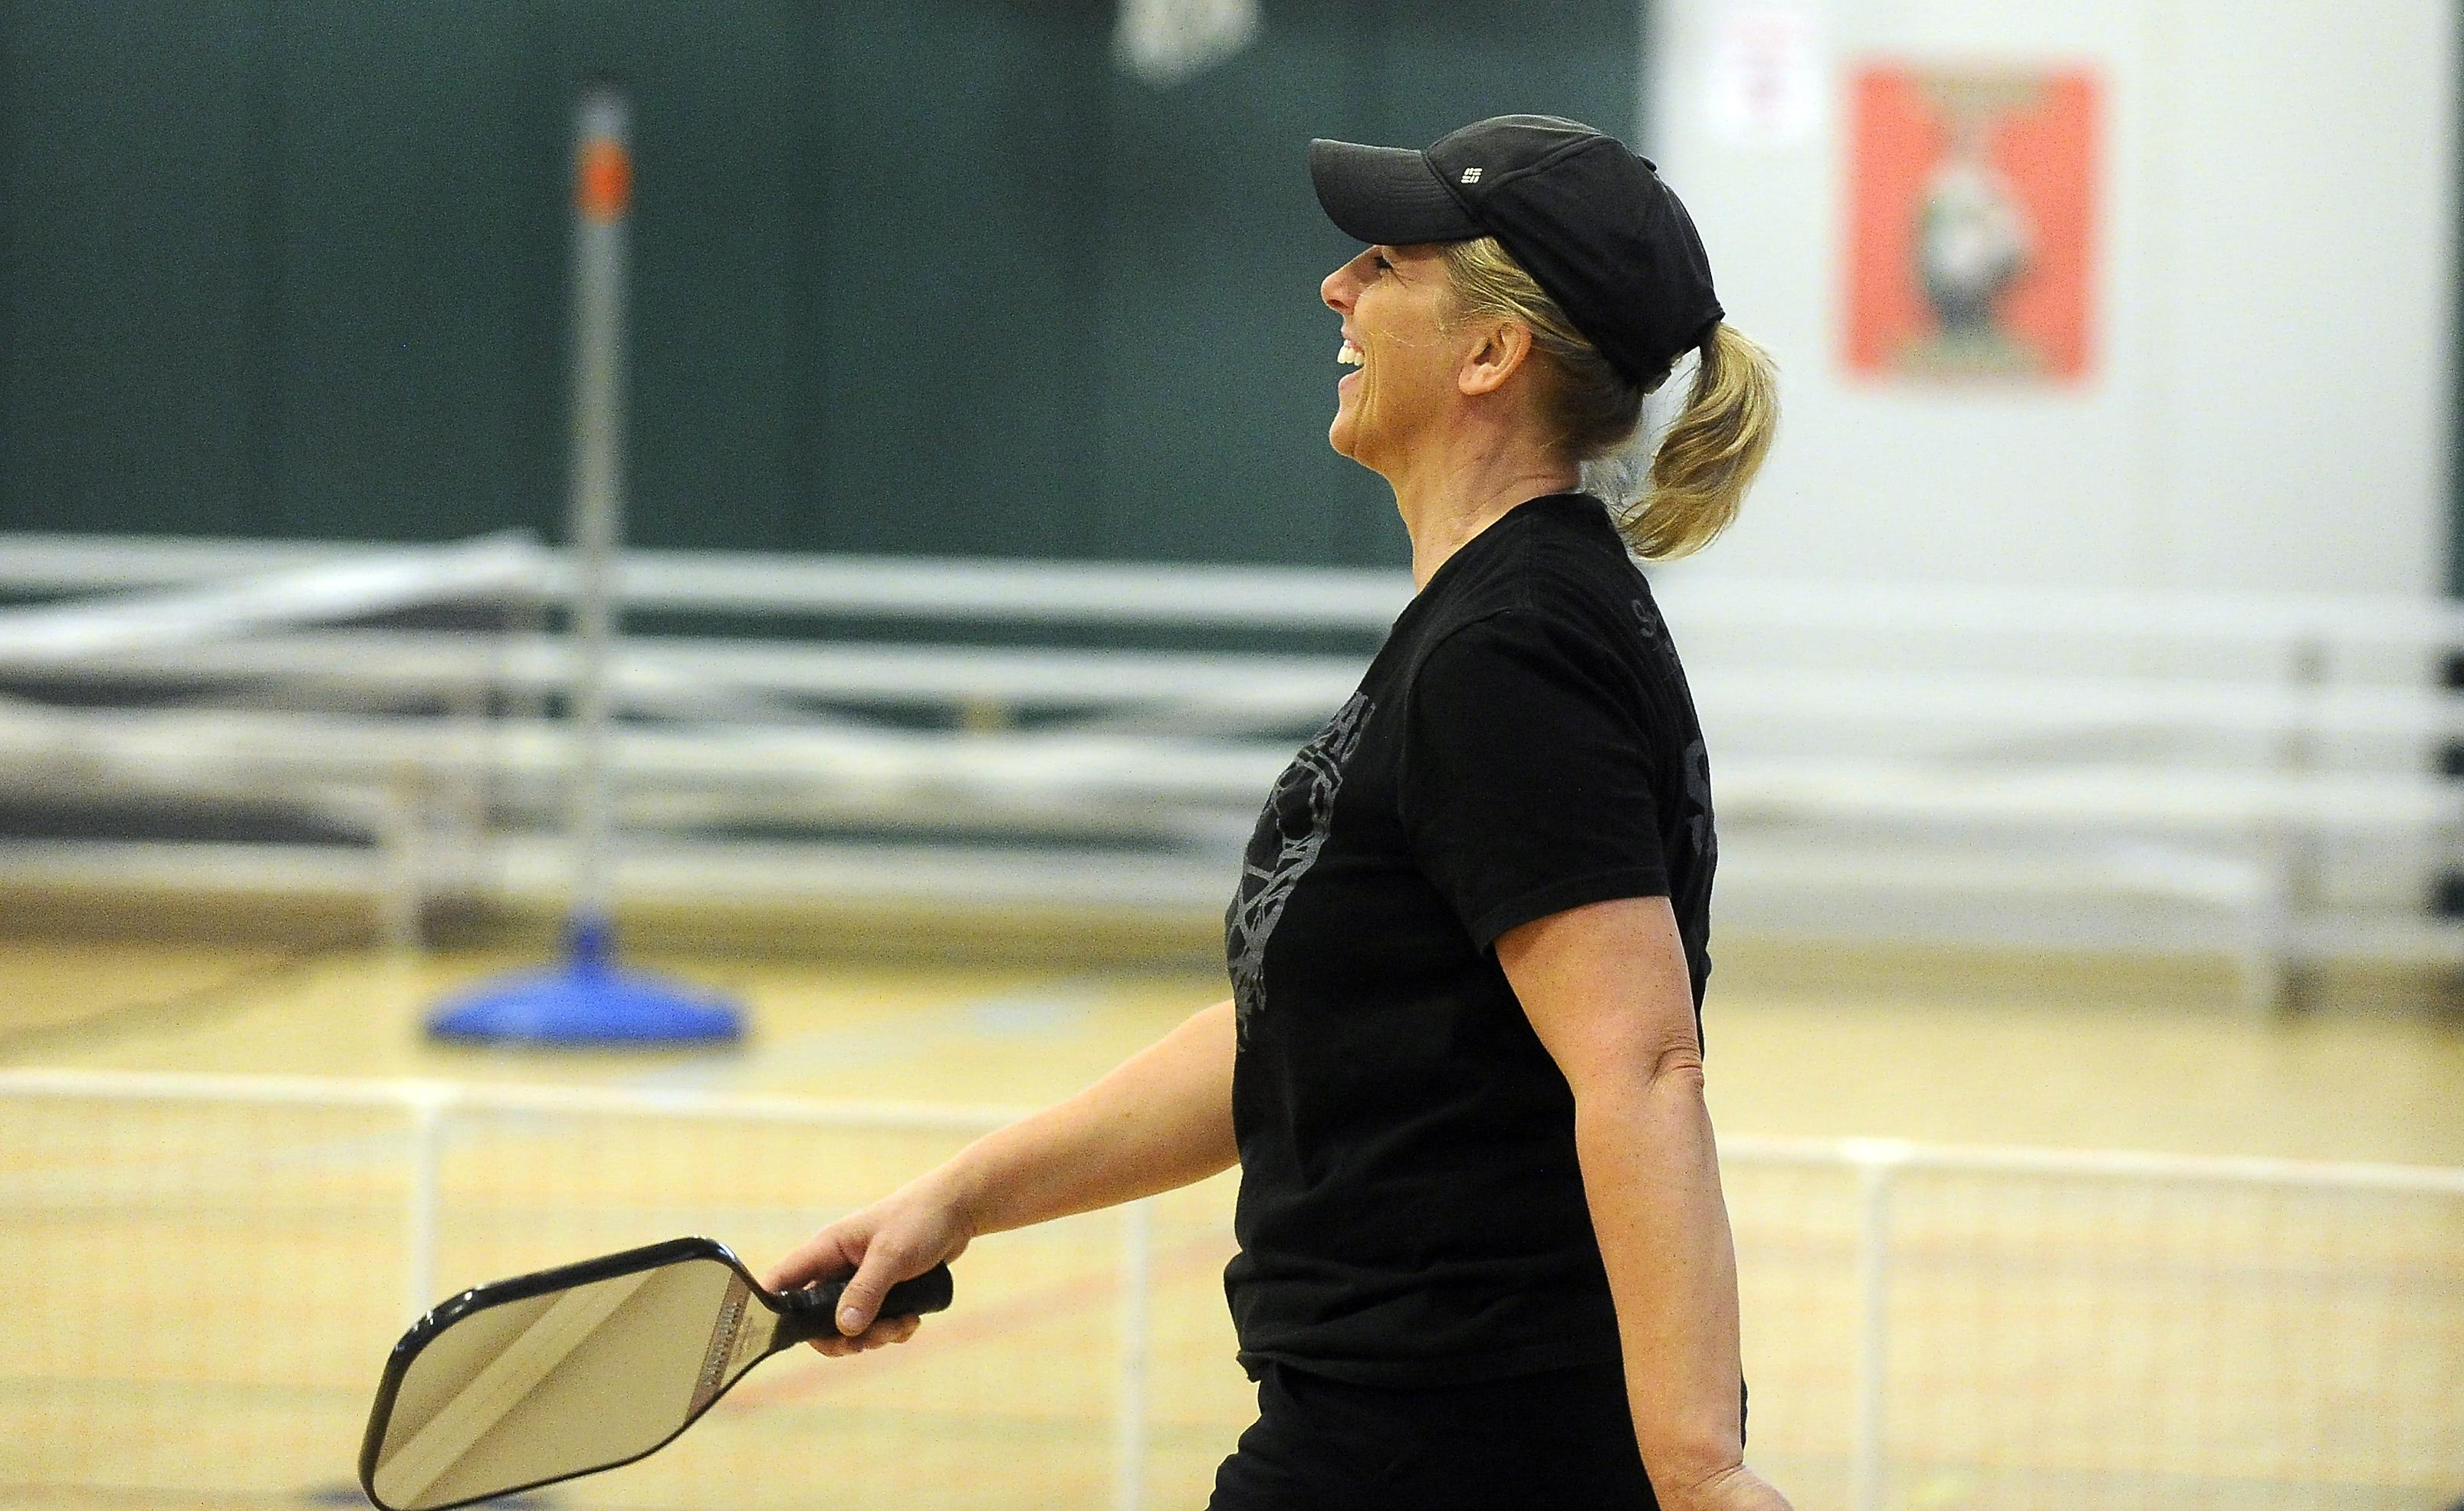 DeAnn Winter of Medford smiles at the conclusion of a match of pickleball at the Santo Center in Medford. [Mail Tribune / Andy Atkinson]